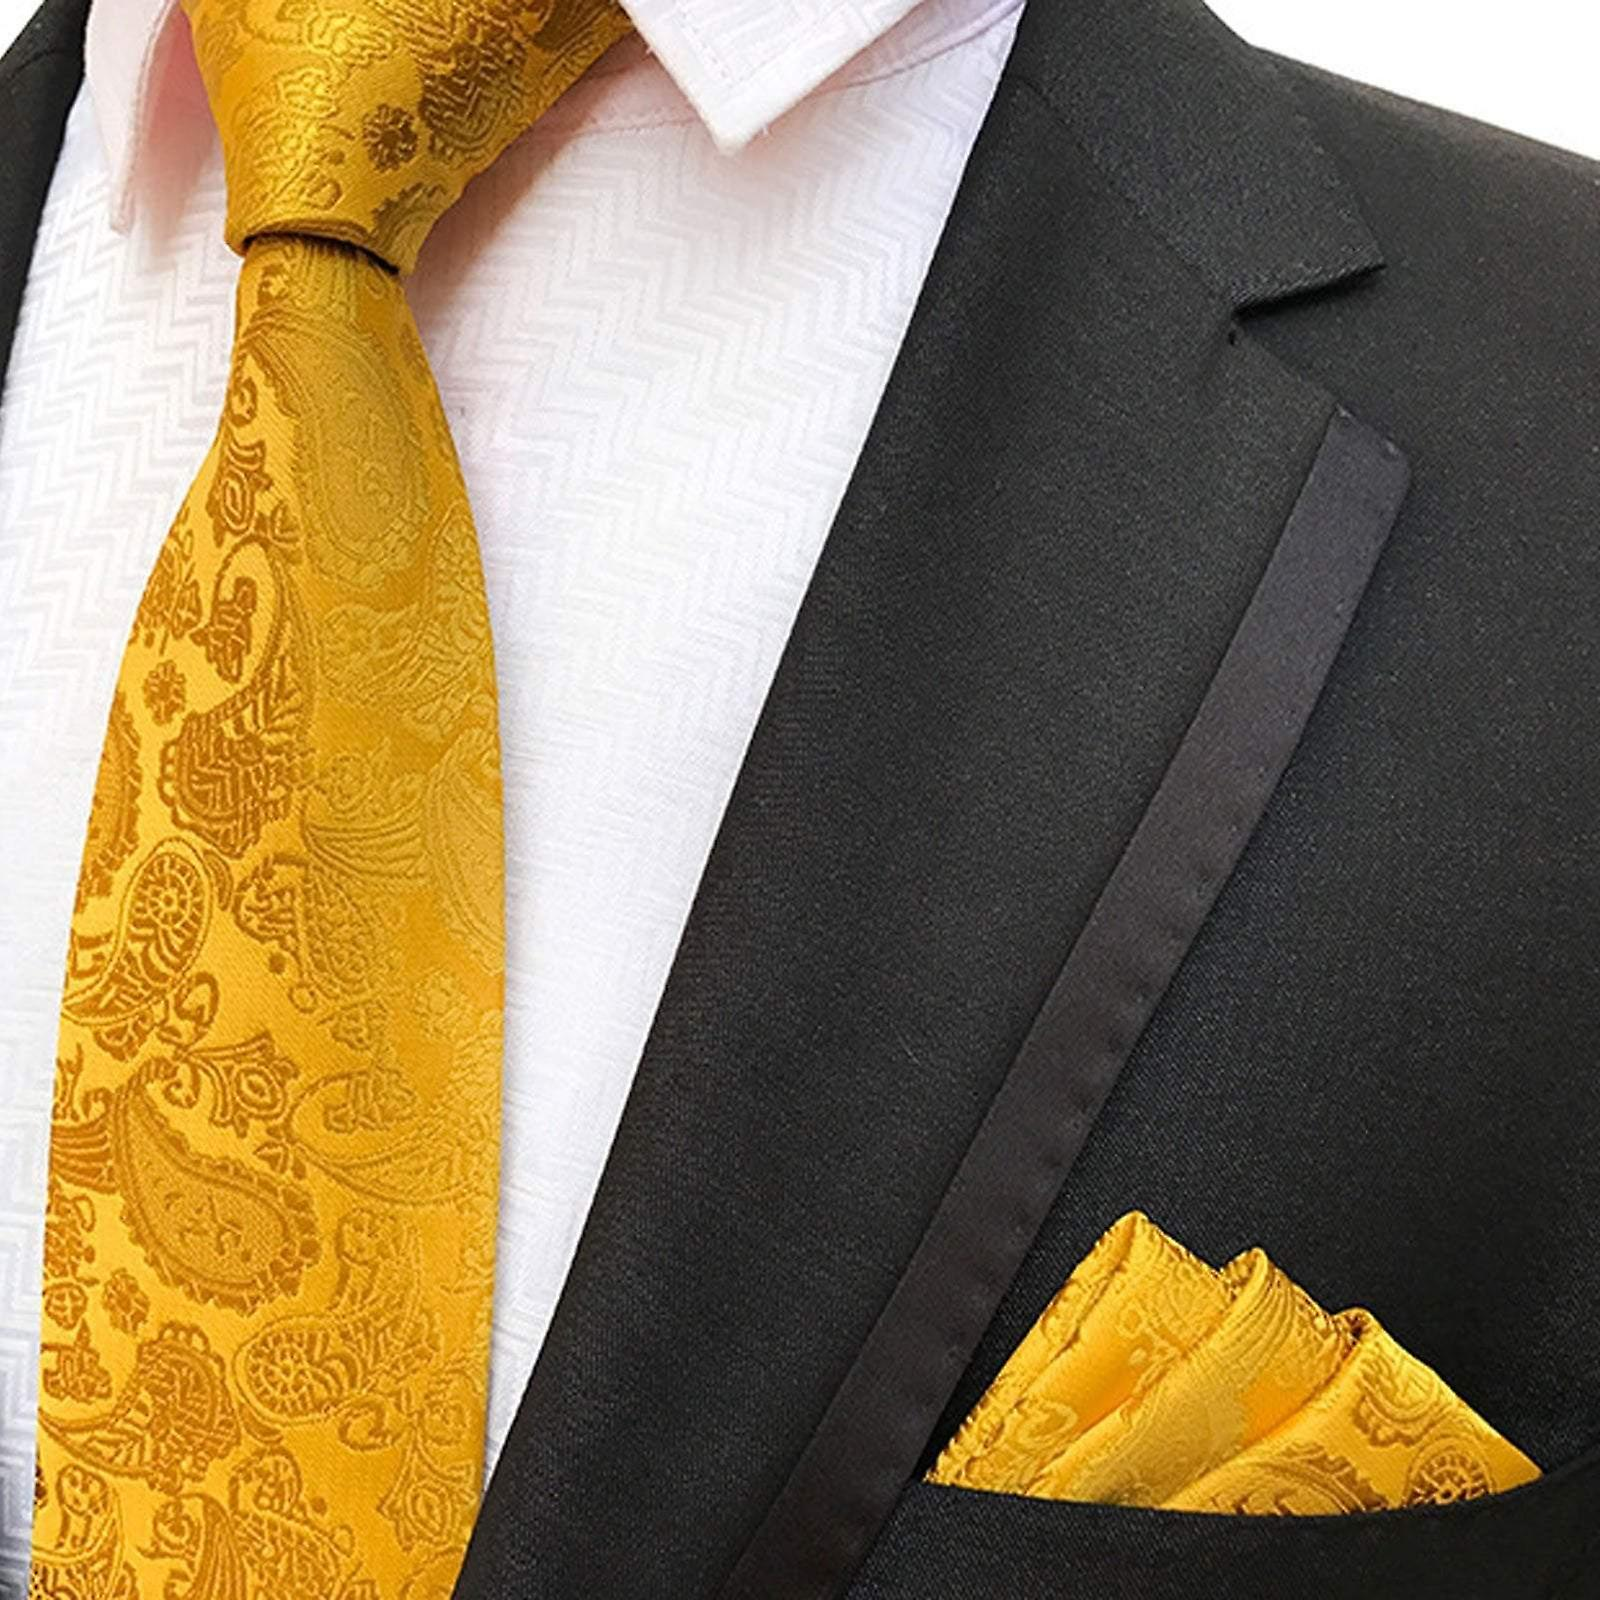 Mustard yellow solid wedding pocket square & tie set